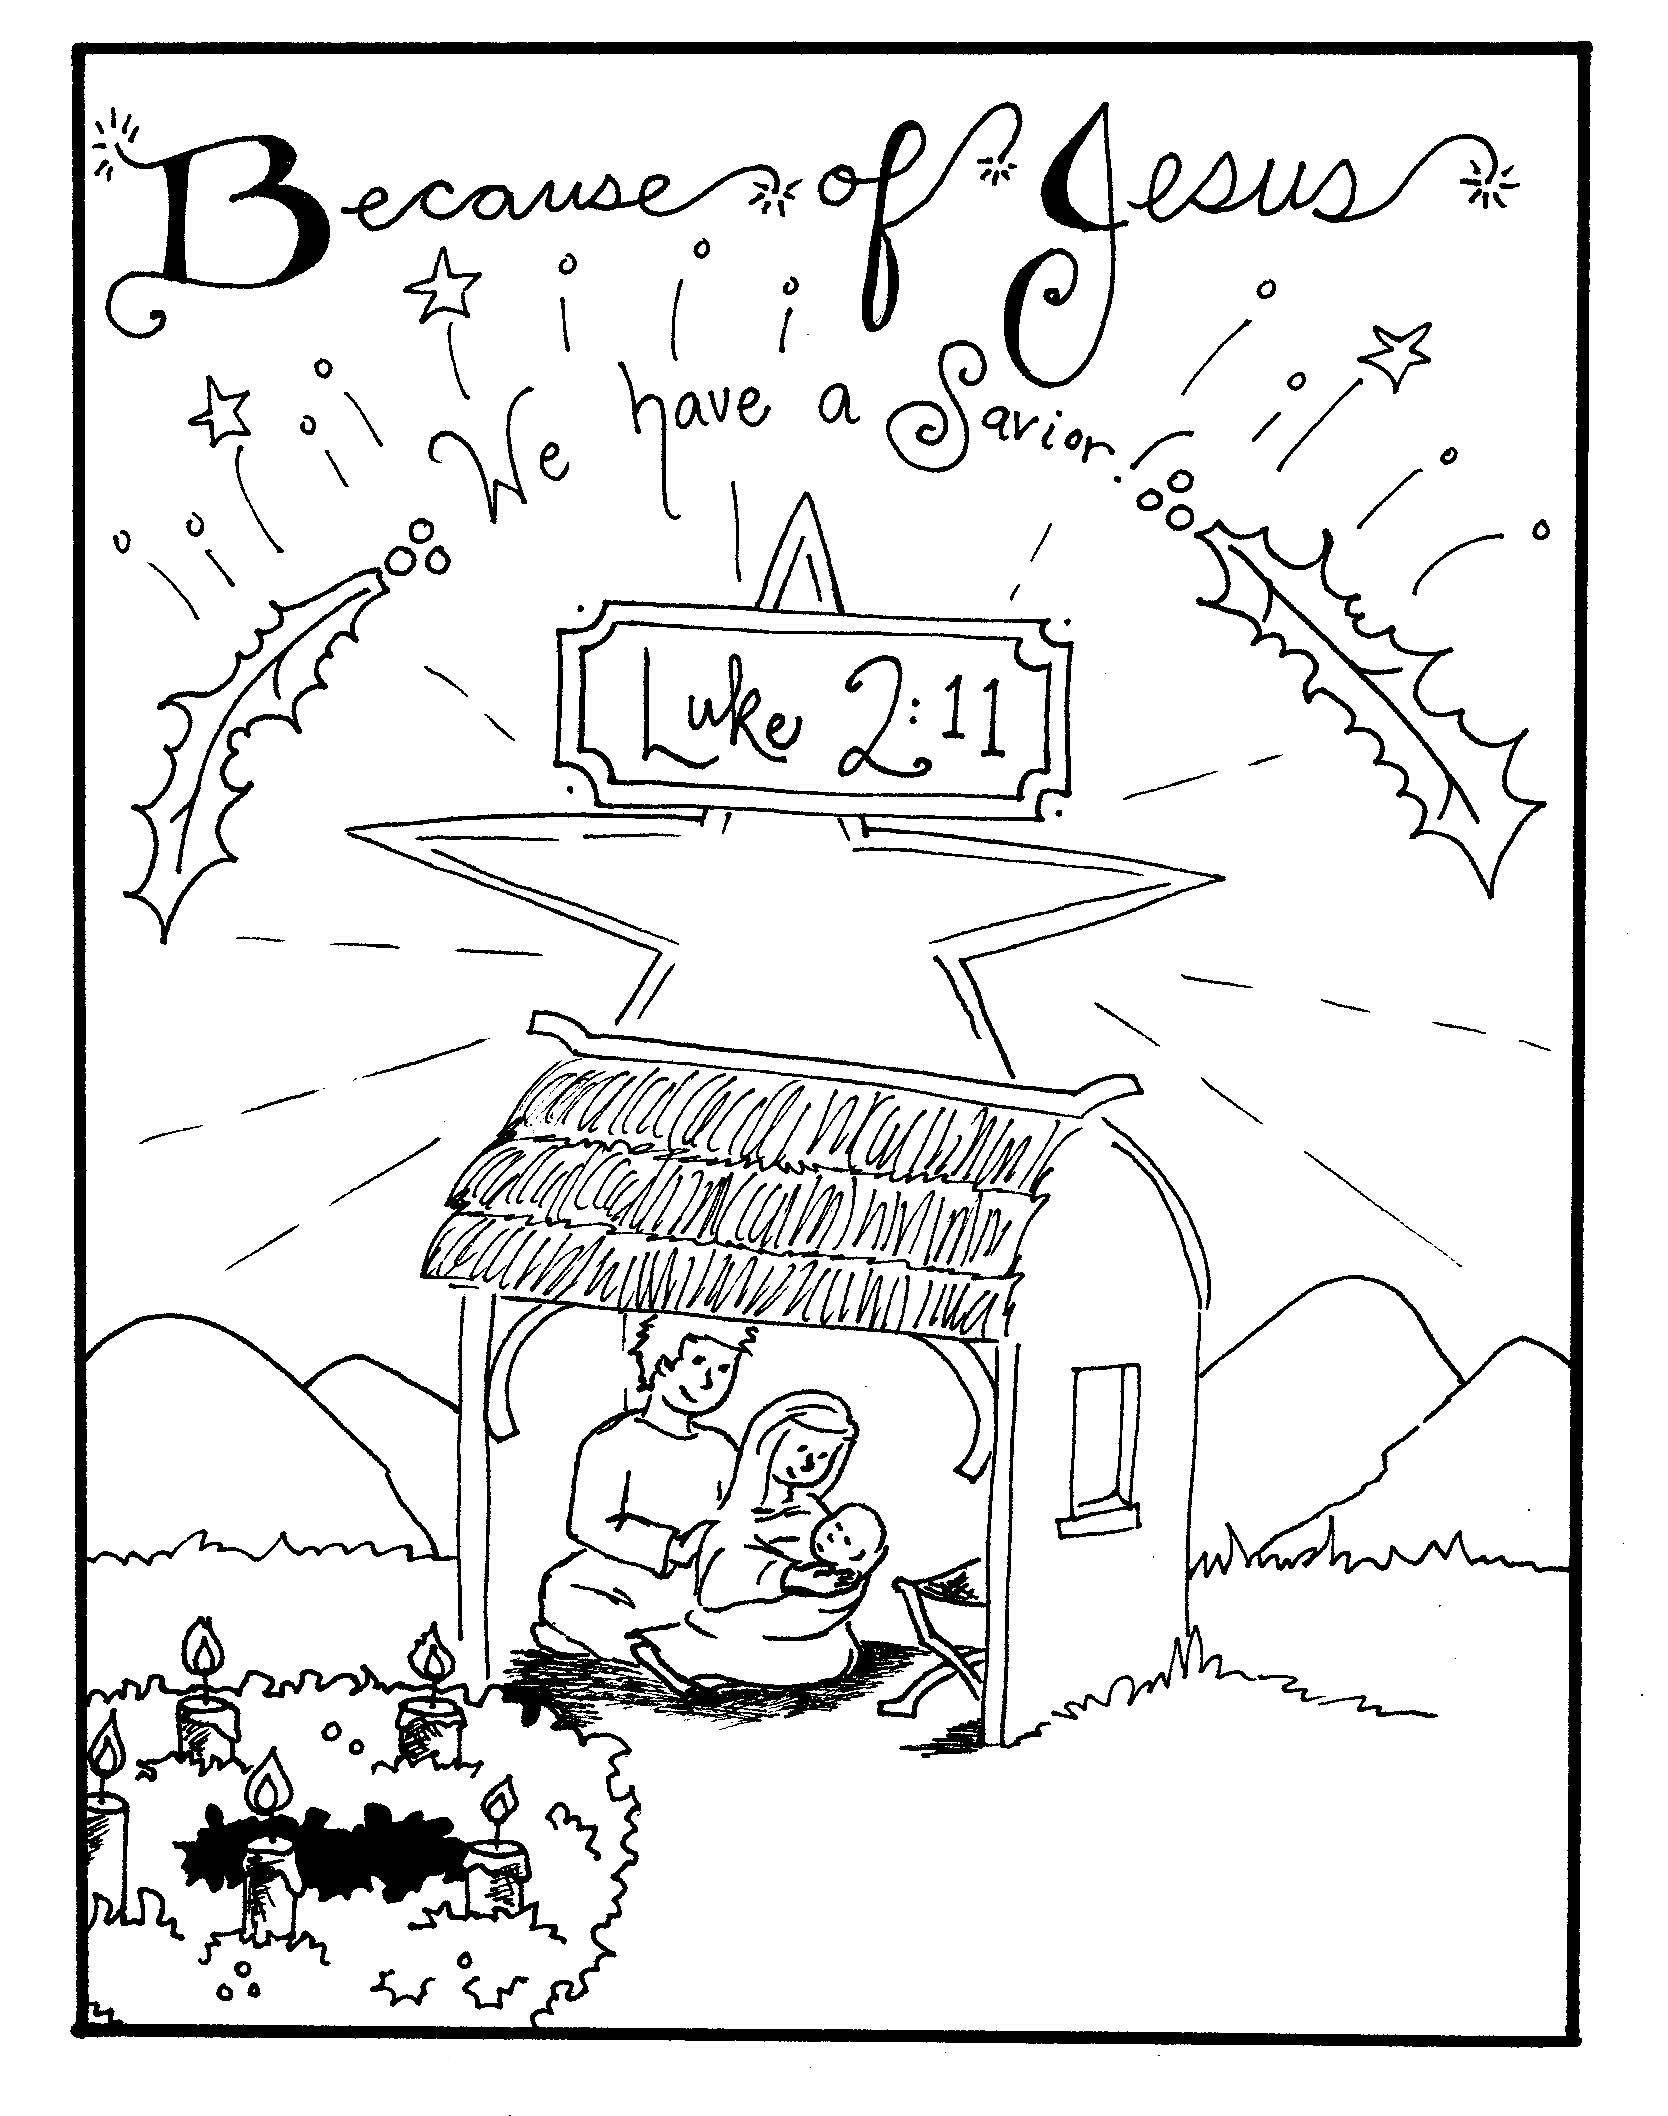 Free Printable Nativity Coloring Pages For Kids - Best Coloring - Free Printable Pictures Of Nativity Scenes